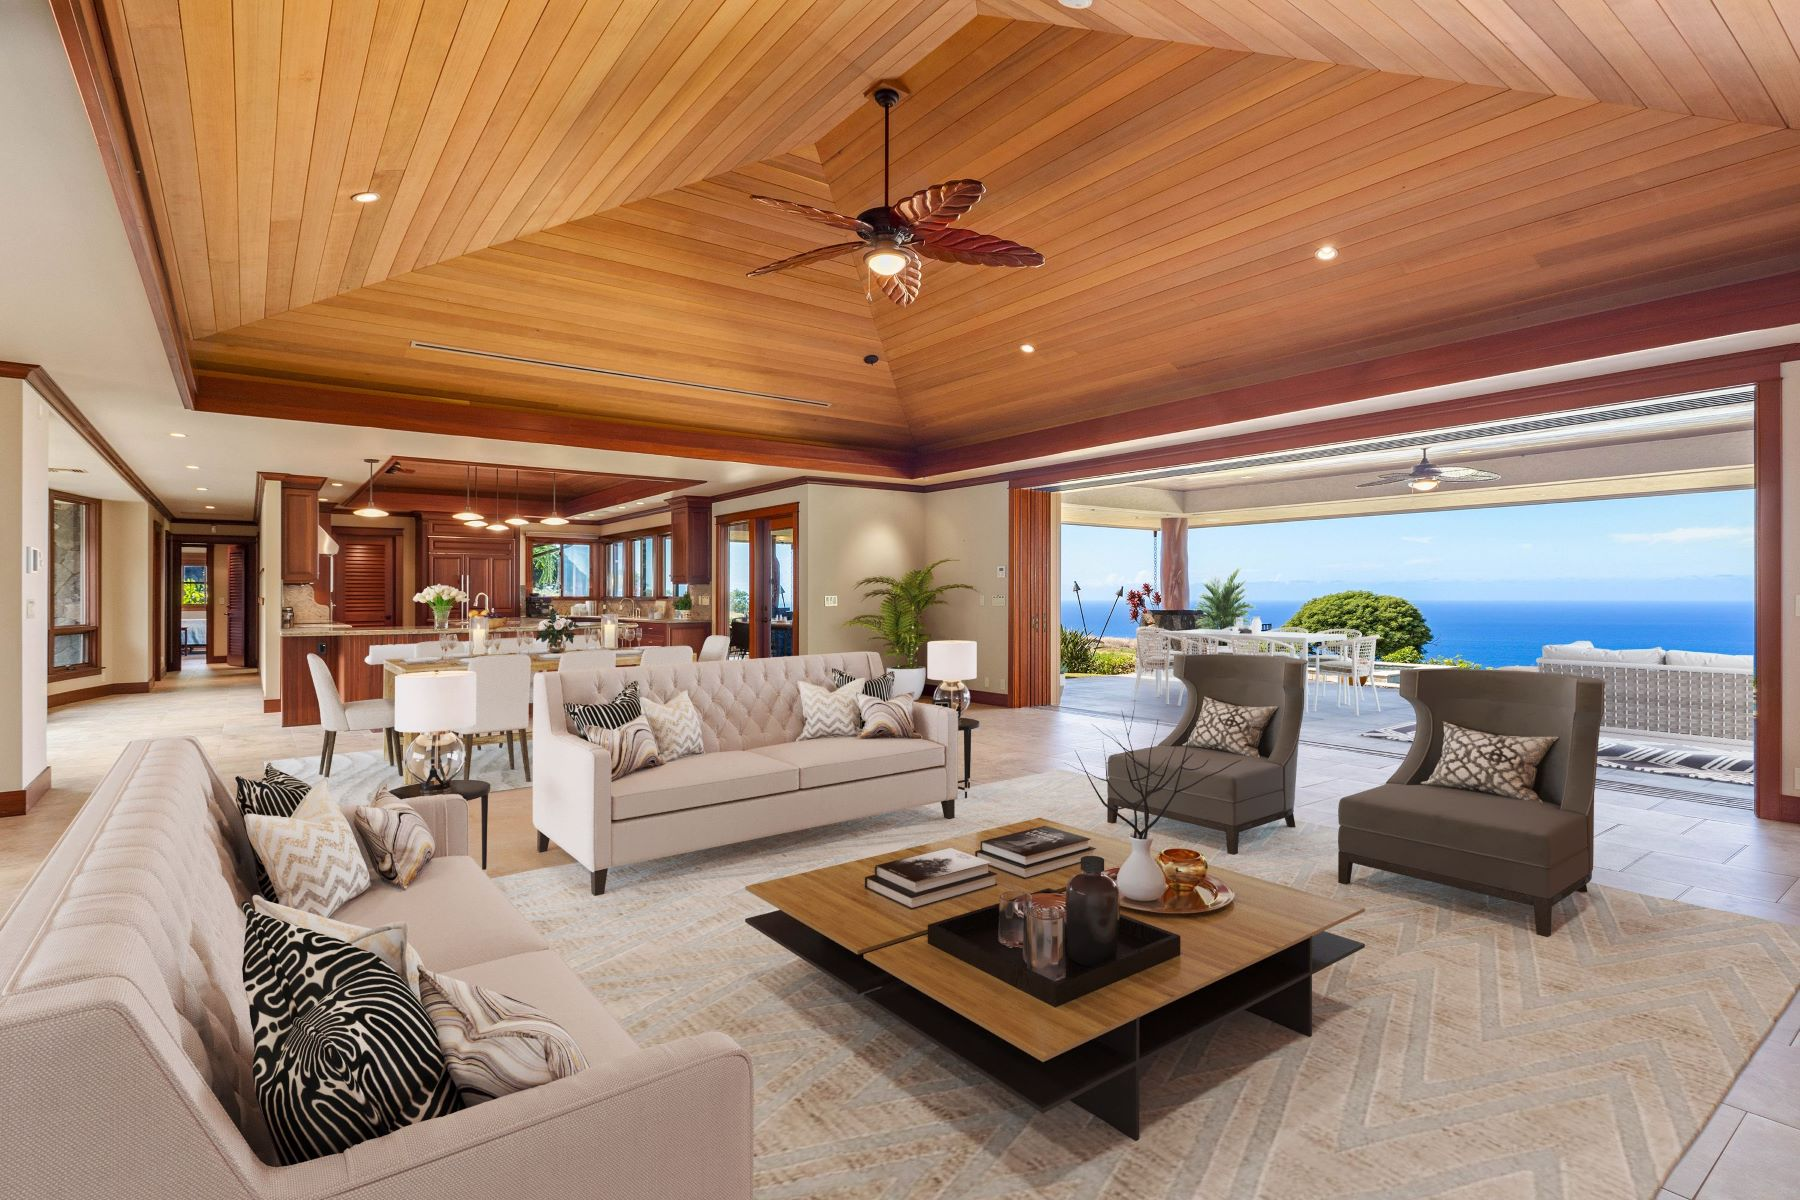 Single Family Homes for Sale at 81-487 PIIALII WY., Kealakekua, HI 96750 81-487 PIIALII WY. Kealakekua, Hawaii 96750 United States